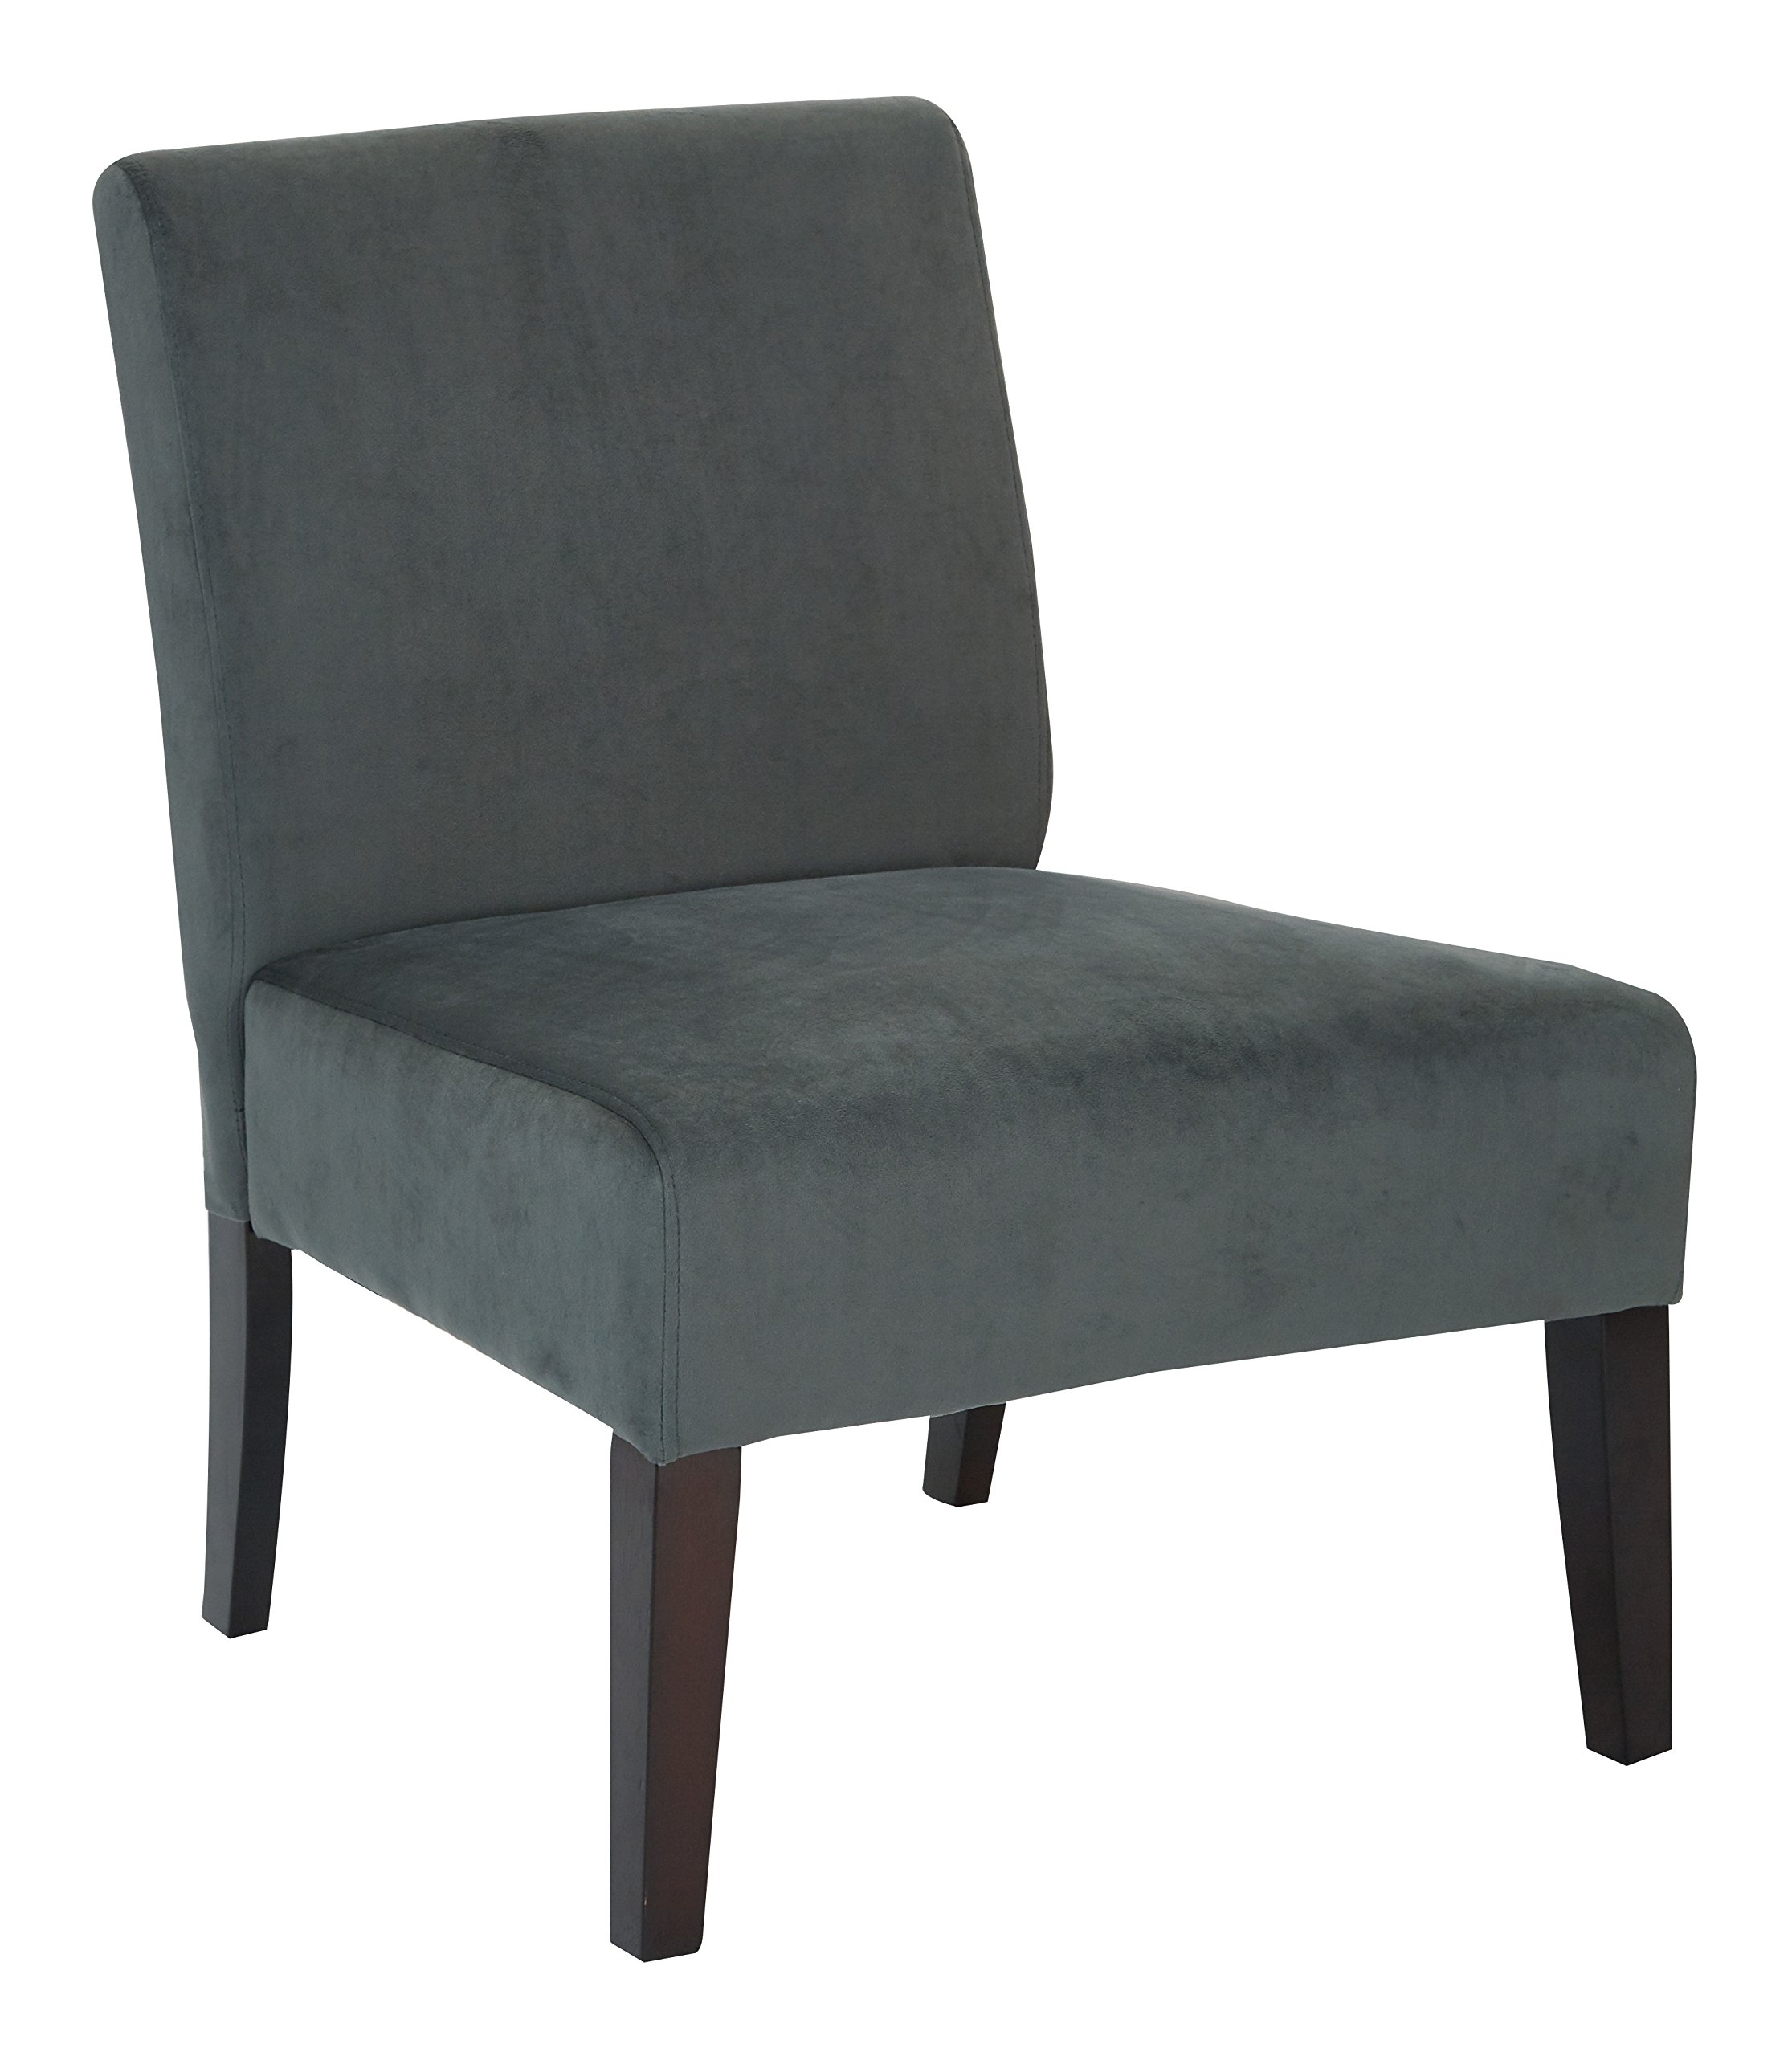 AVE SIX Laguna Accent Chair with Espresso Finish Solid Wood Legs, Graphite Velvet Fabric